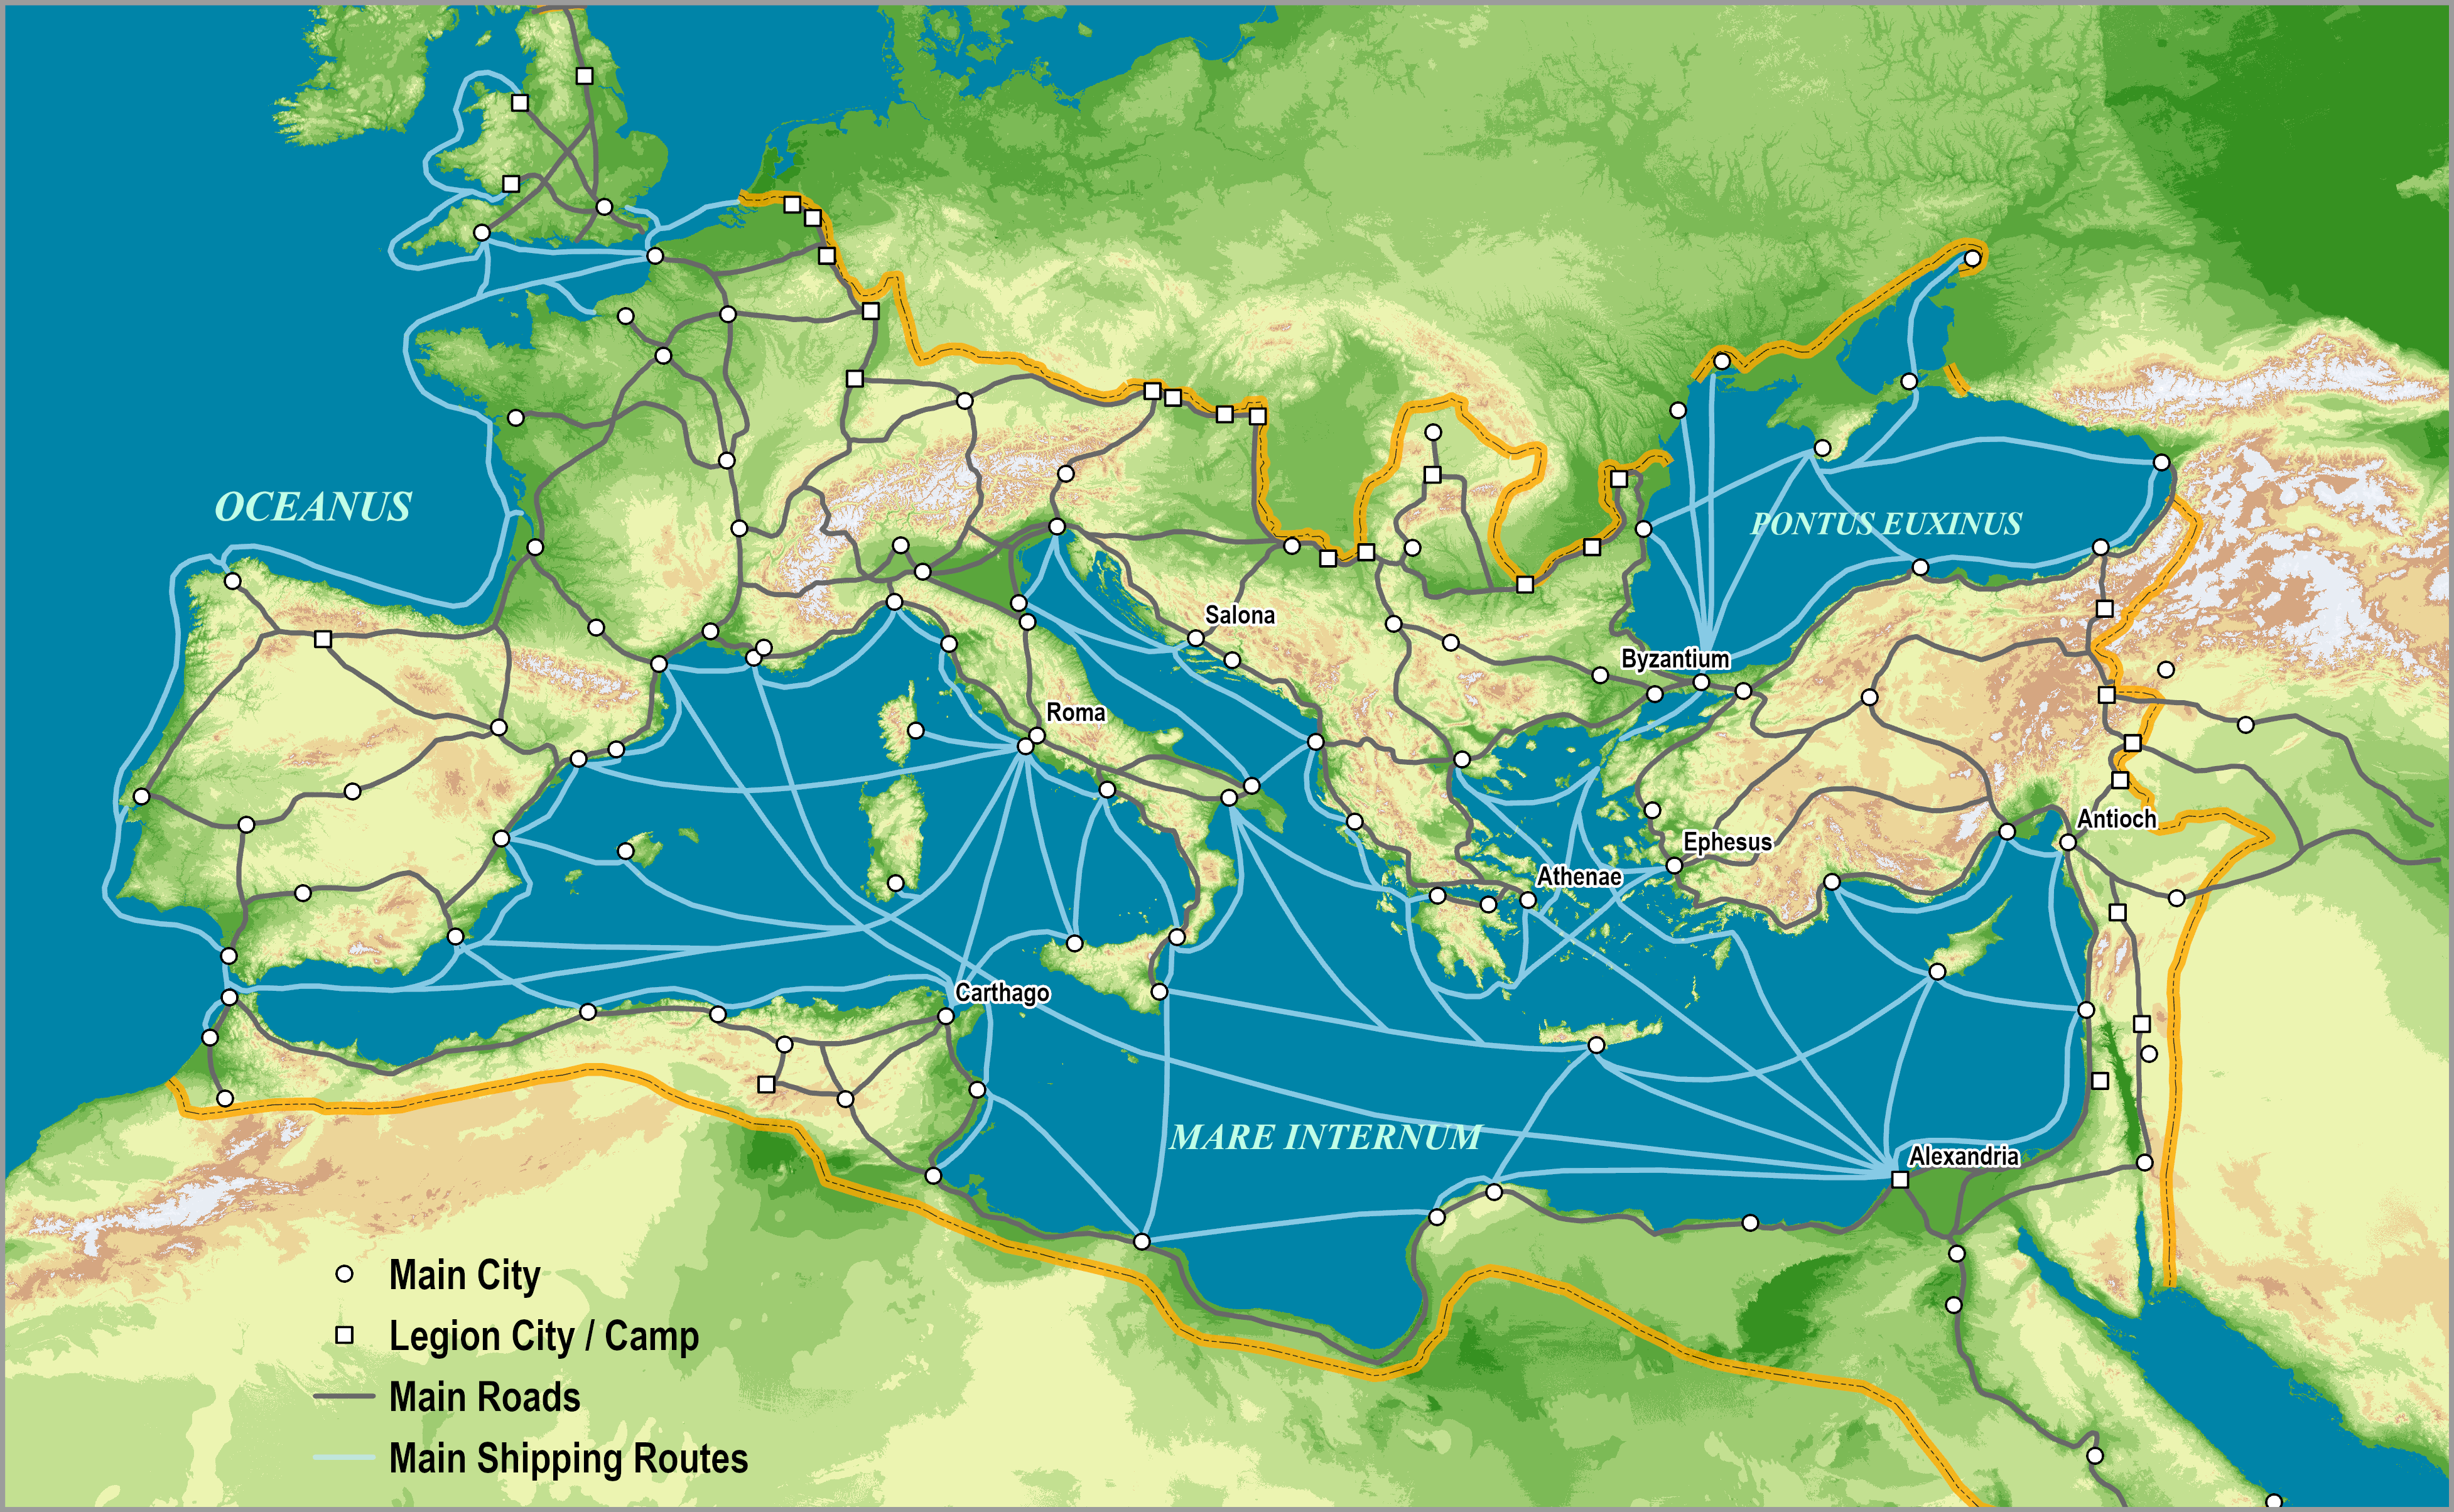 The Roman Empire, c125 AD | The Geography of Transport Systems